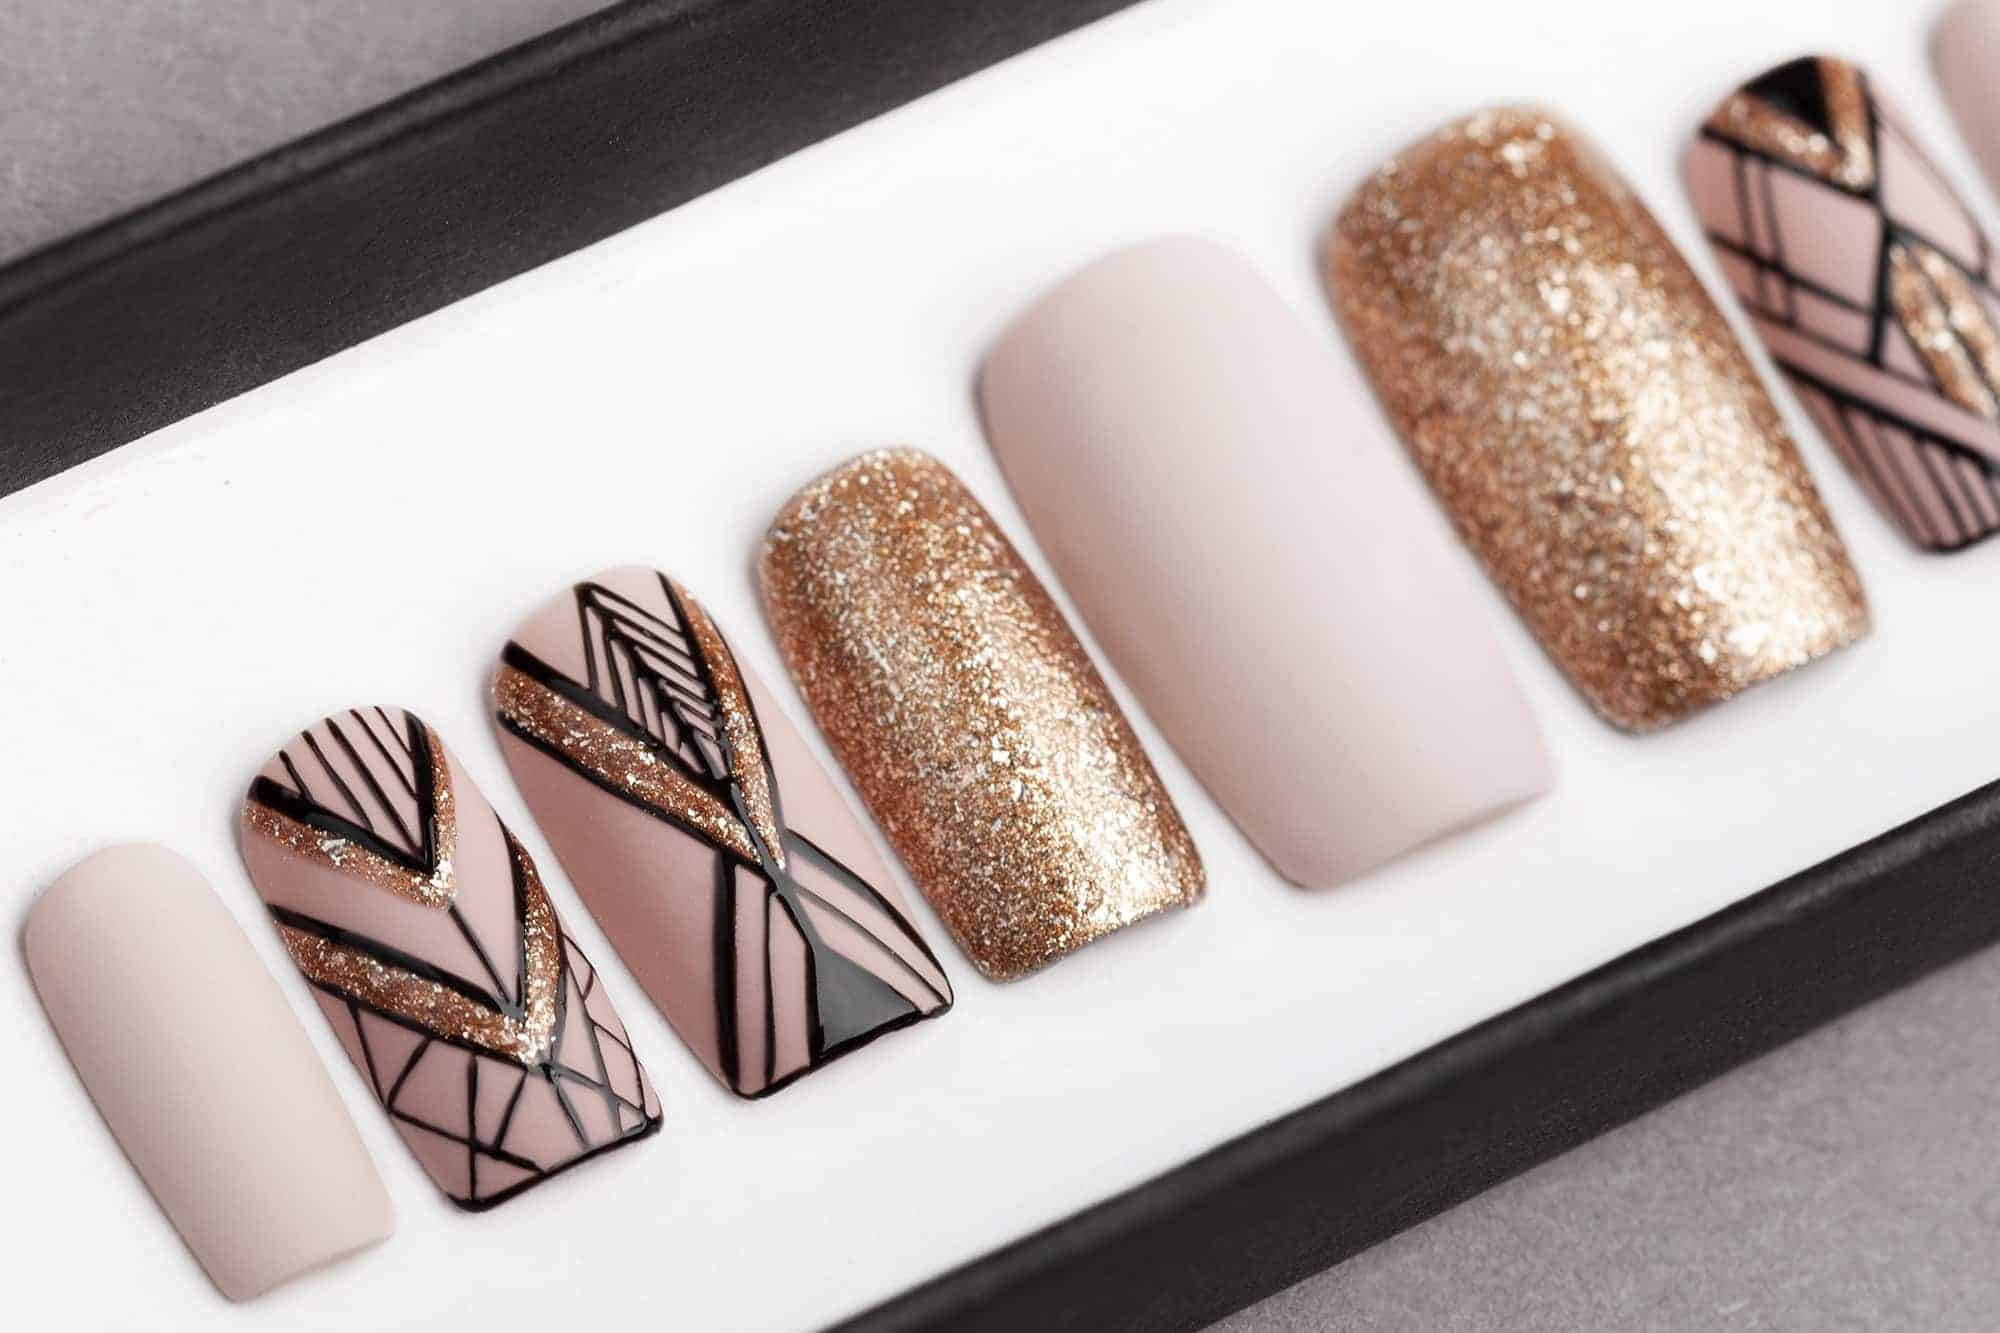 Mocha & Sand Gold Geometry Press on Nails | Hand painted Nail Art | Fake Nails | False Nails | Artificial Nails | Glitters | Glue on Nails